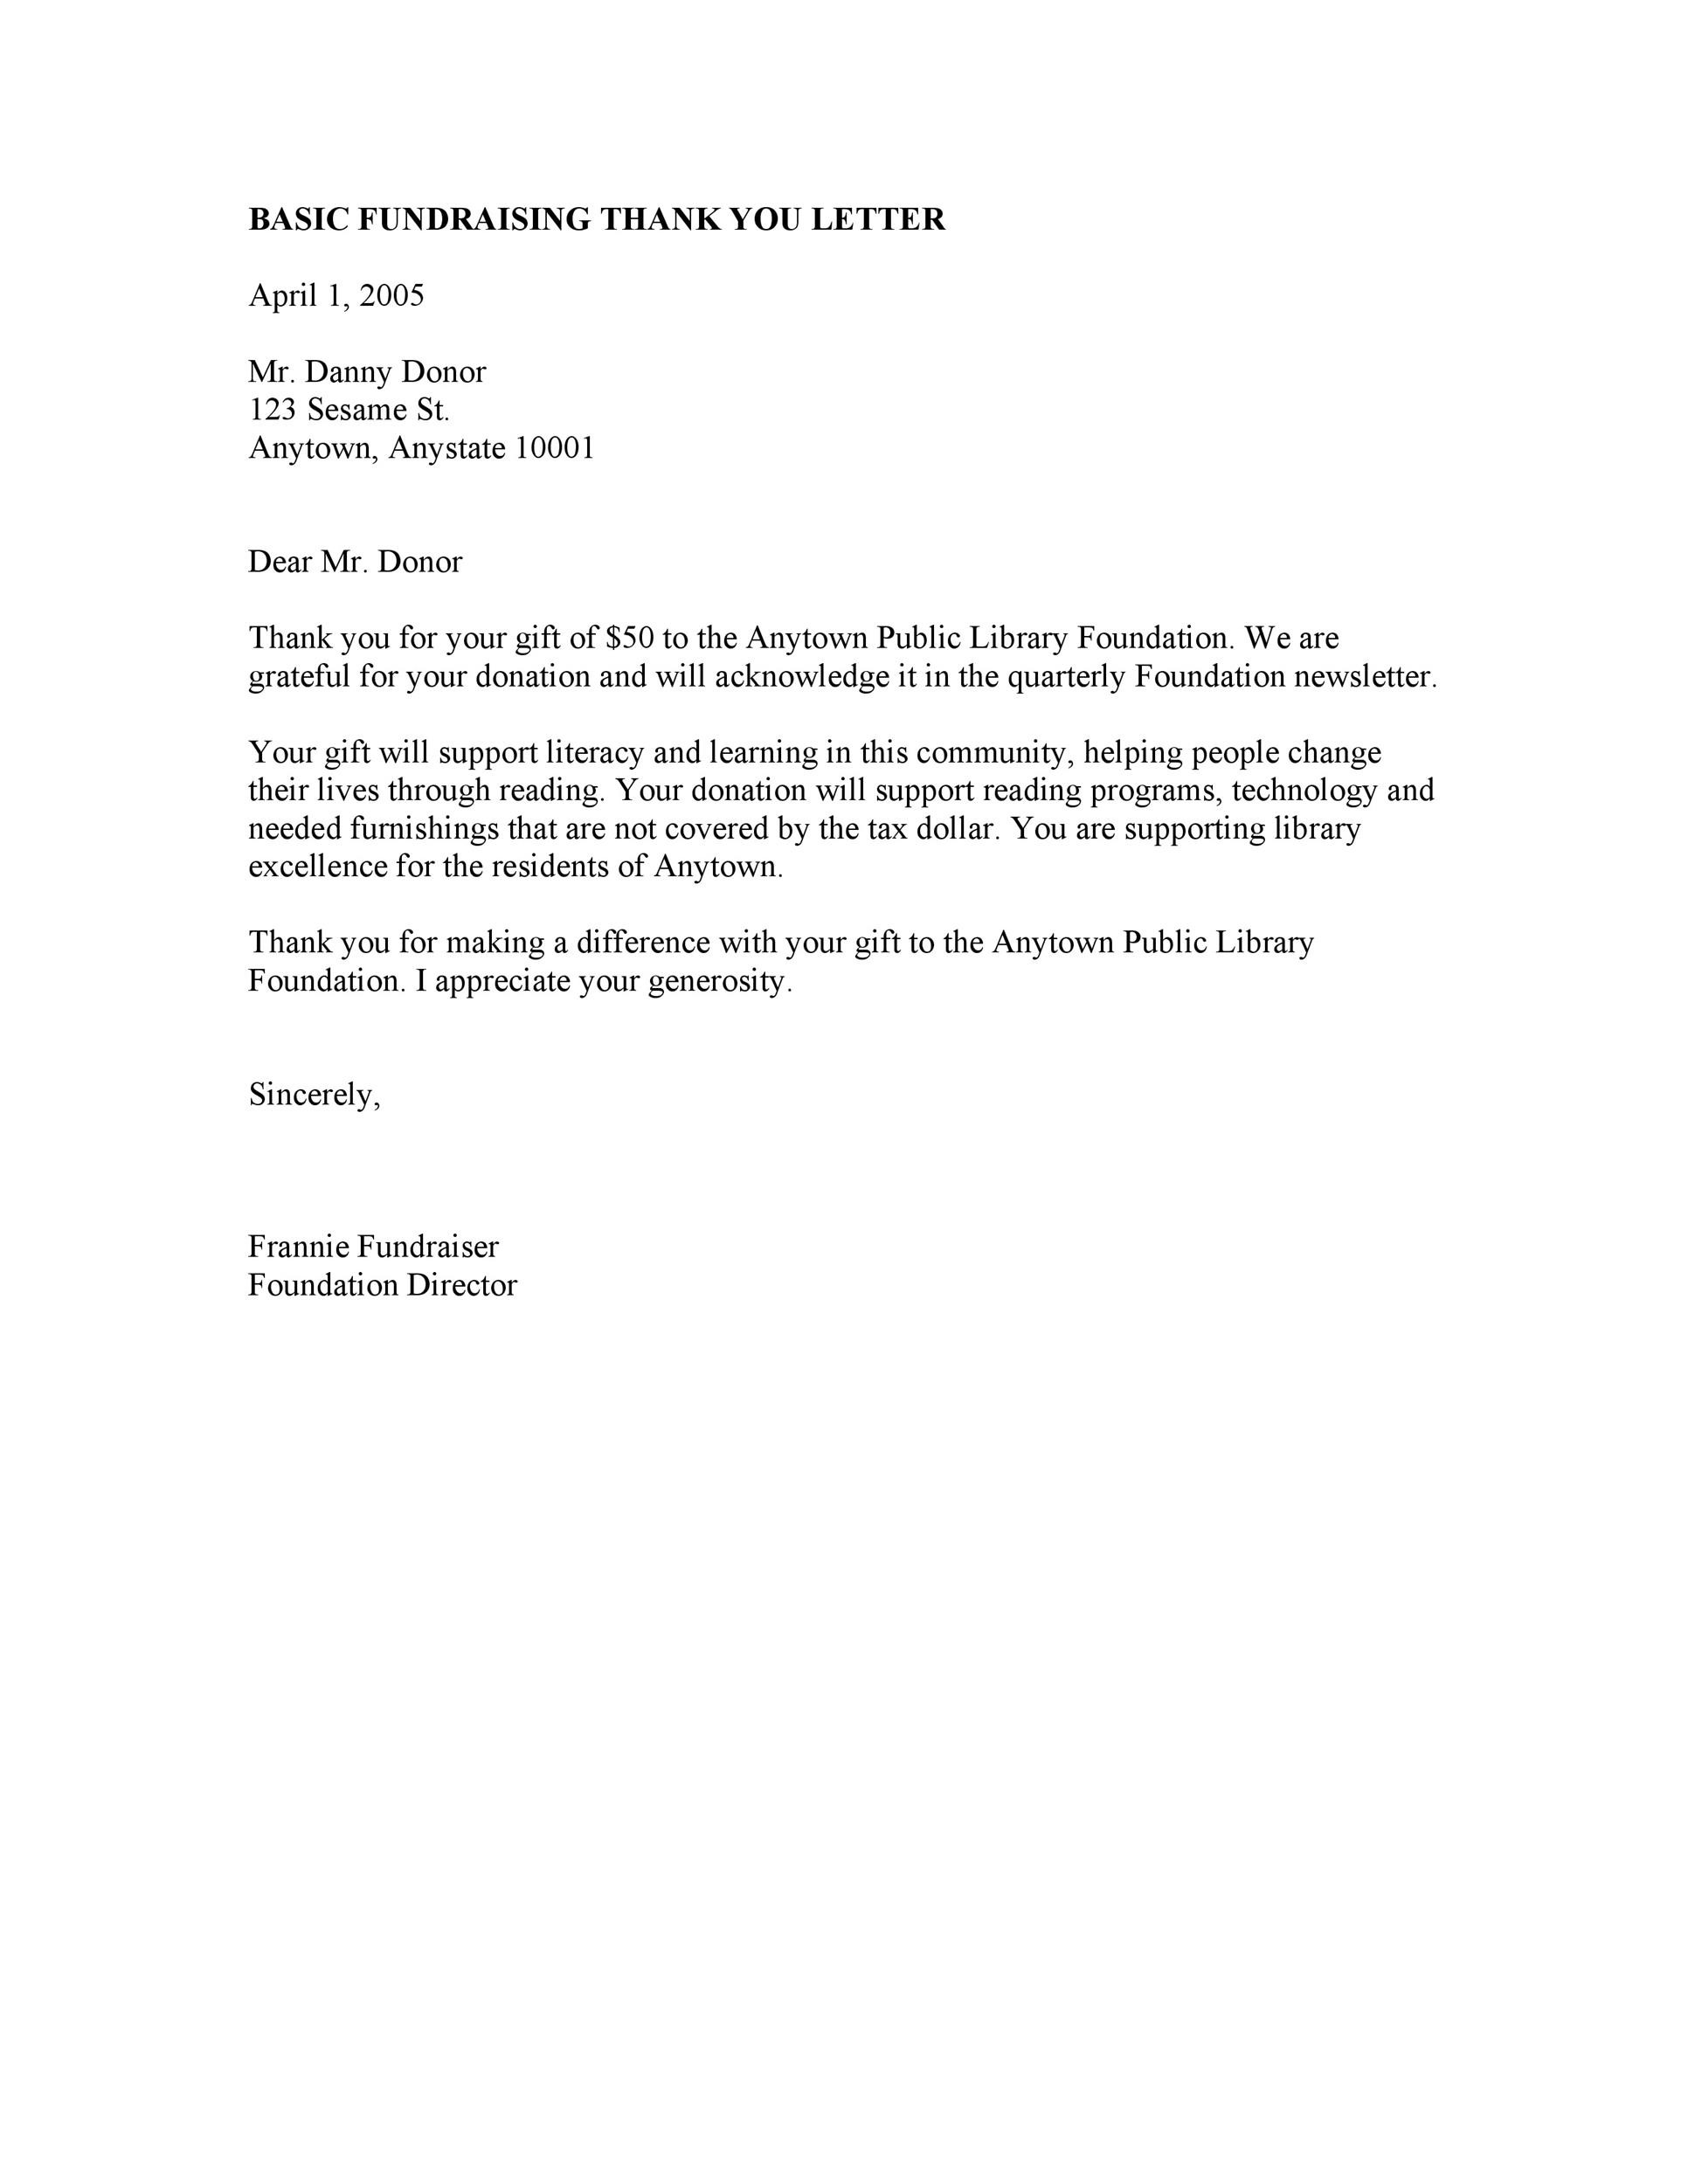 30 Thank you Letter Templates ScholarshipDonationBoss – Thank You Letter for Donations